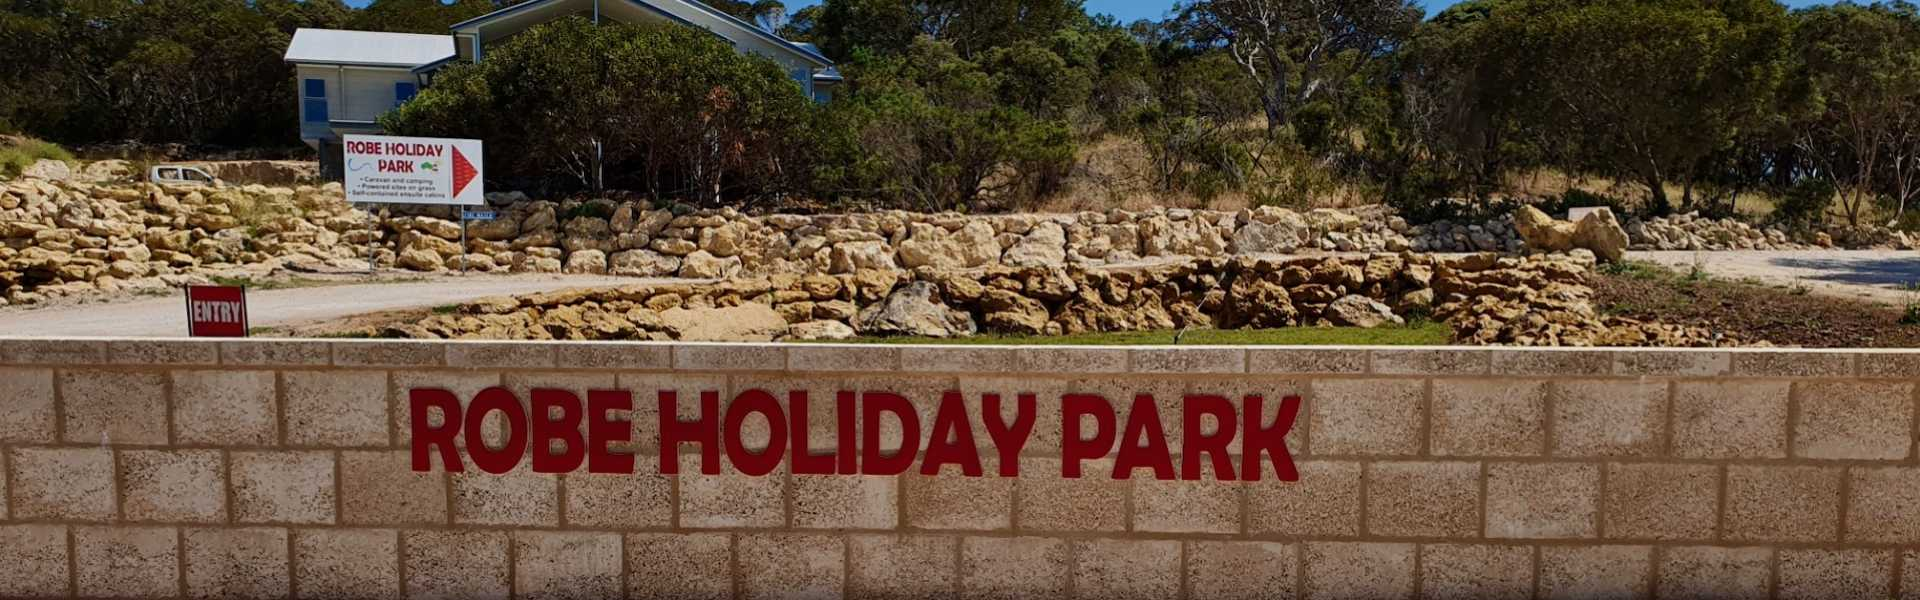 Kui Parks, Robe Holiday Park, Entrance